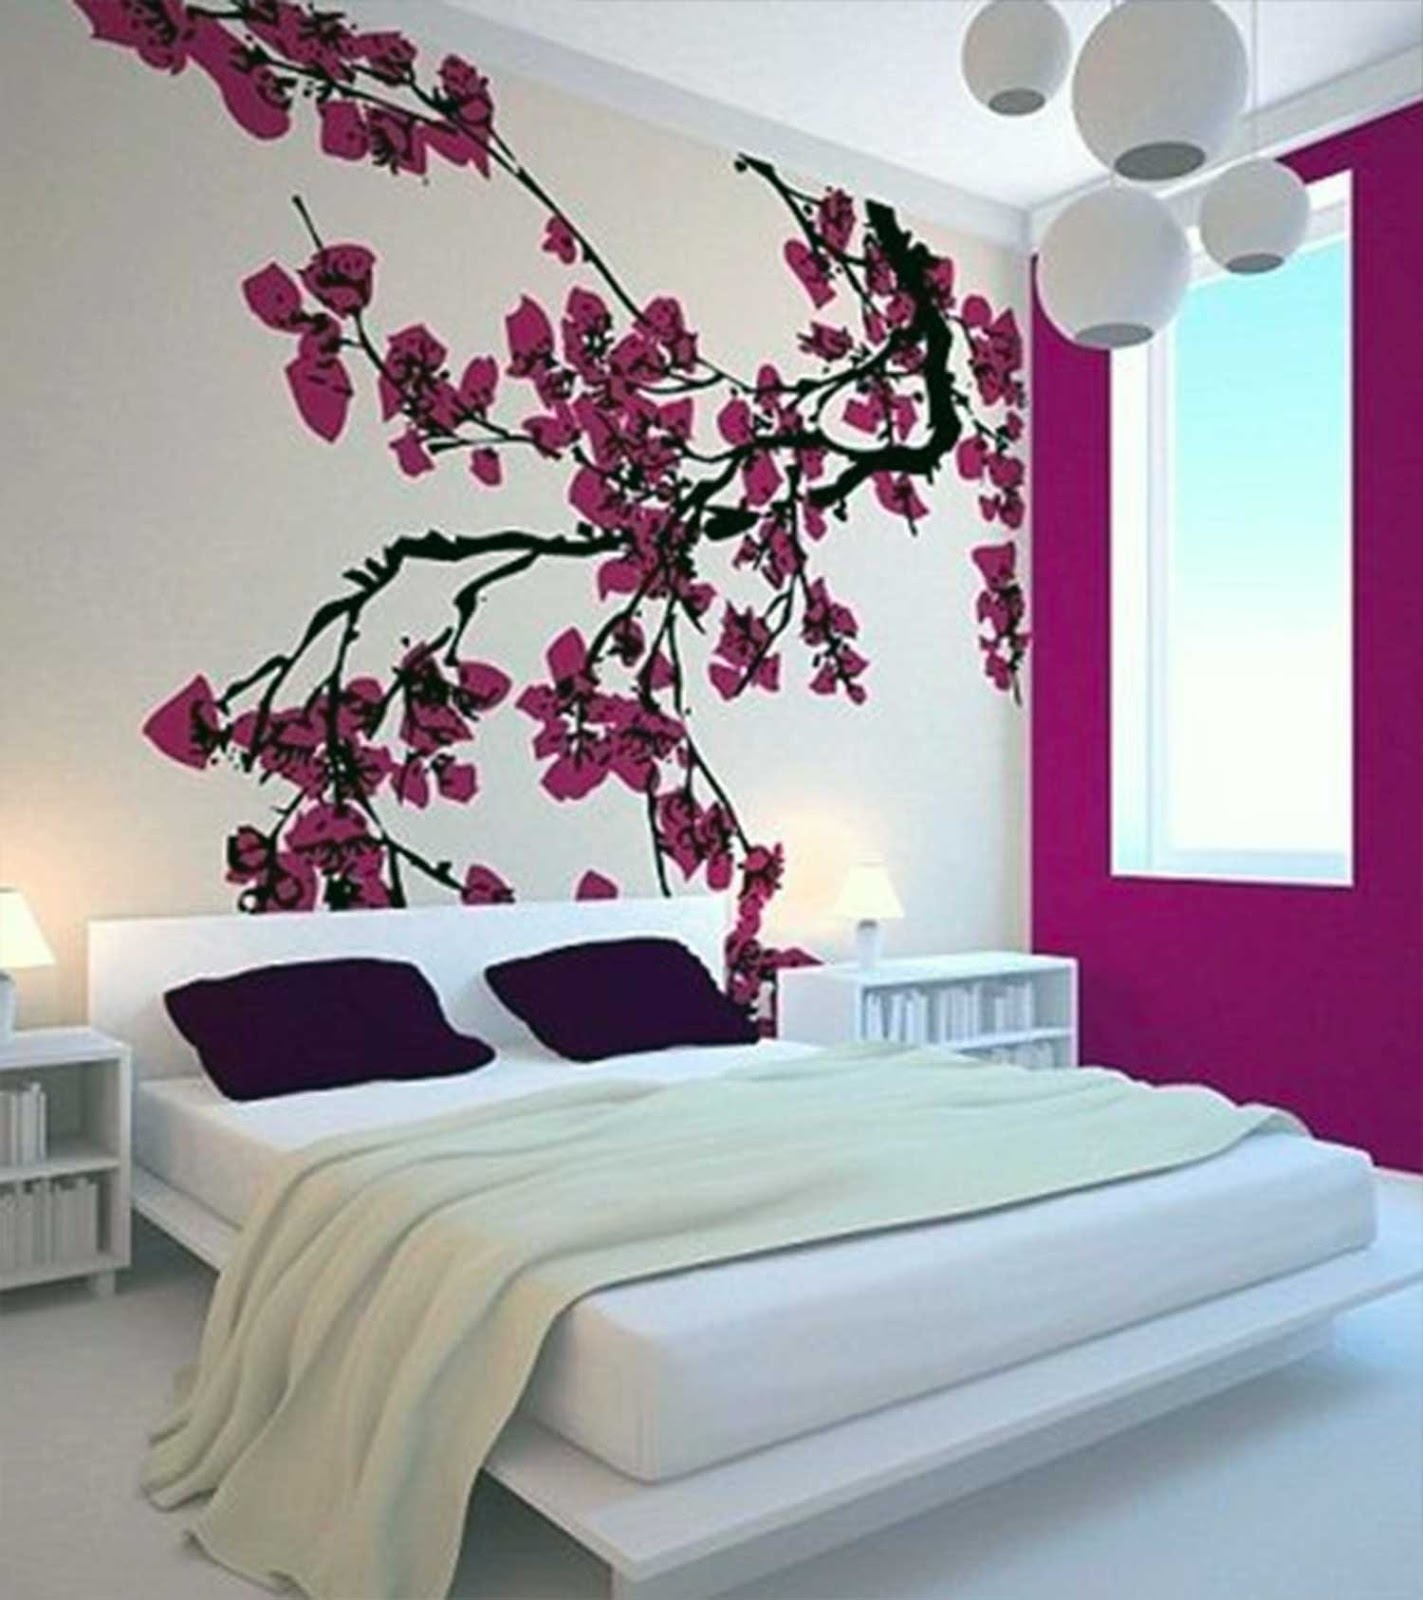 Japanese Style Bedroom Ideas For Girls - My Lovely Home